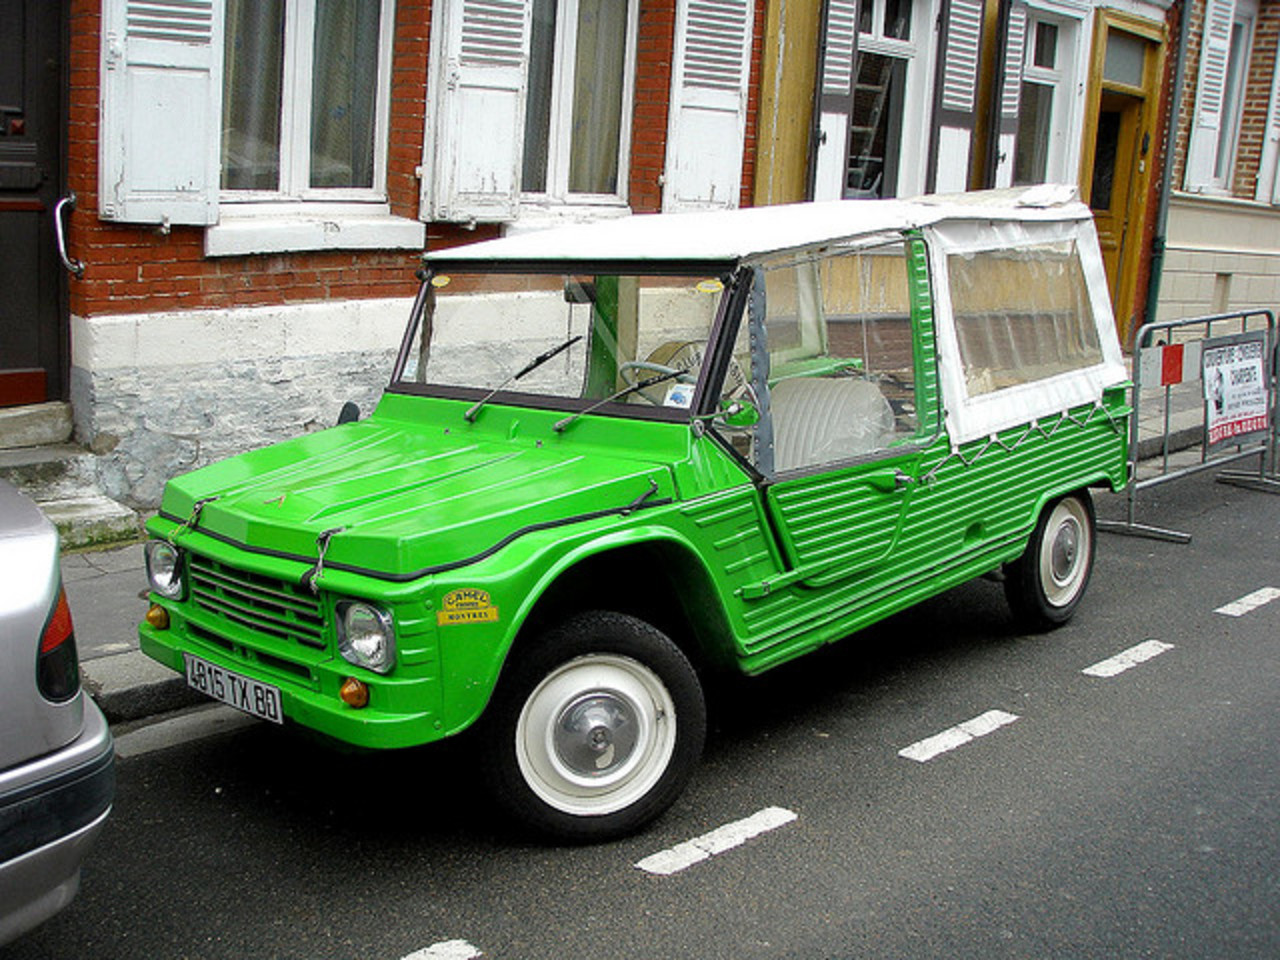 Citroen Mehari 22 - cars catalog, specs, features, photos, videos, review,